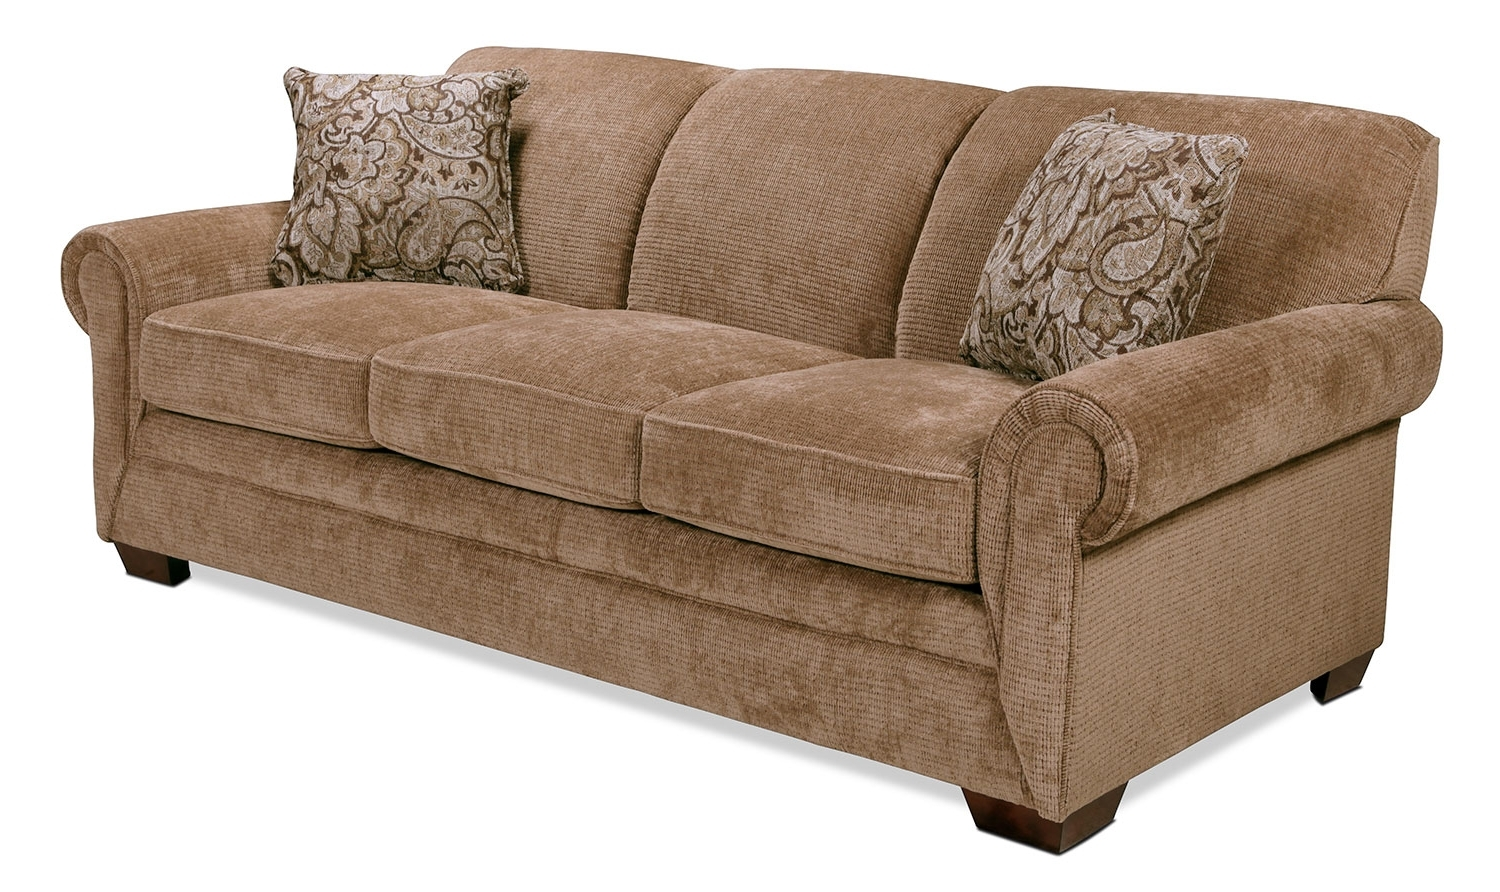 Levin Furniture With Regard To Lane Furniture Sofas (View 12 of 20)